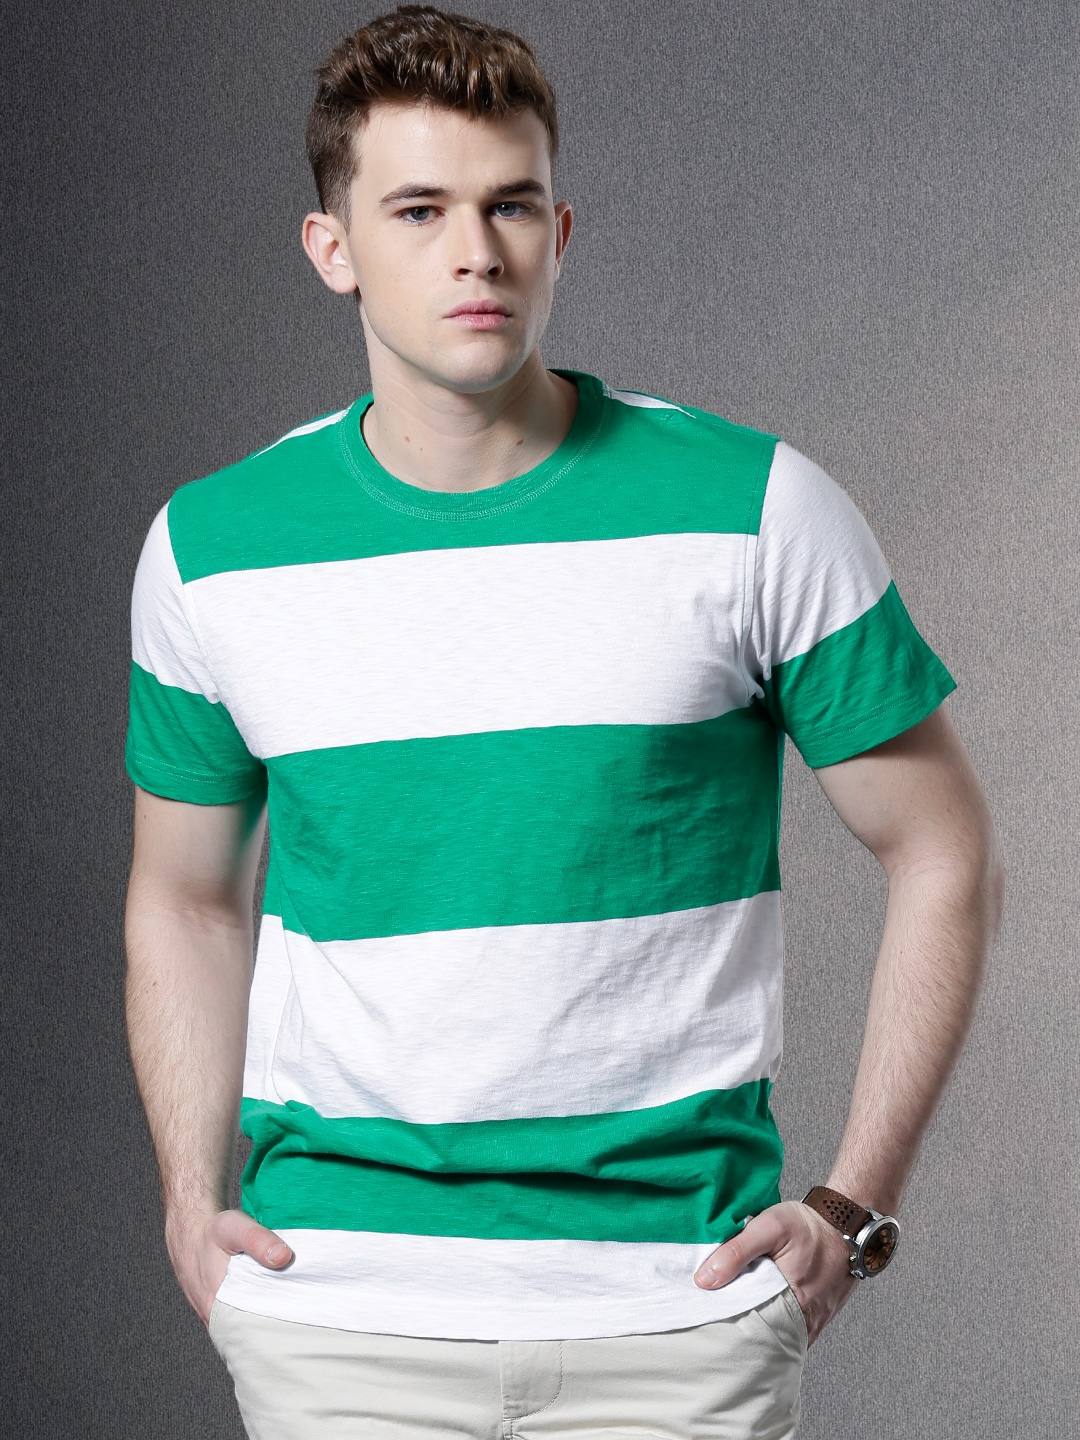 96235344c95f1a Buy Brooks Brothers Green   White Striped T Shirt - Tshirts for Men ...